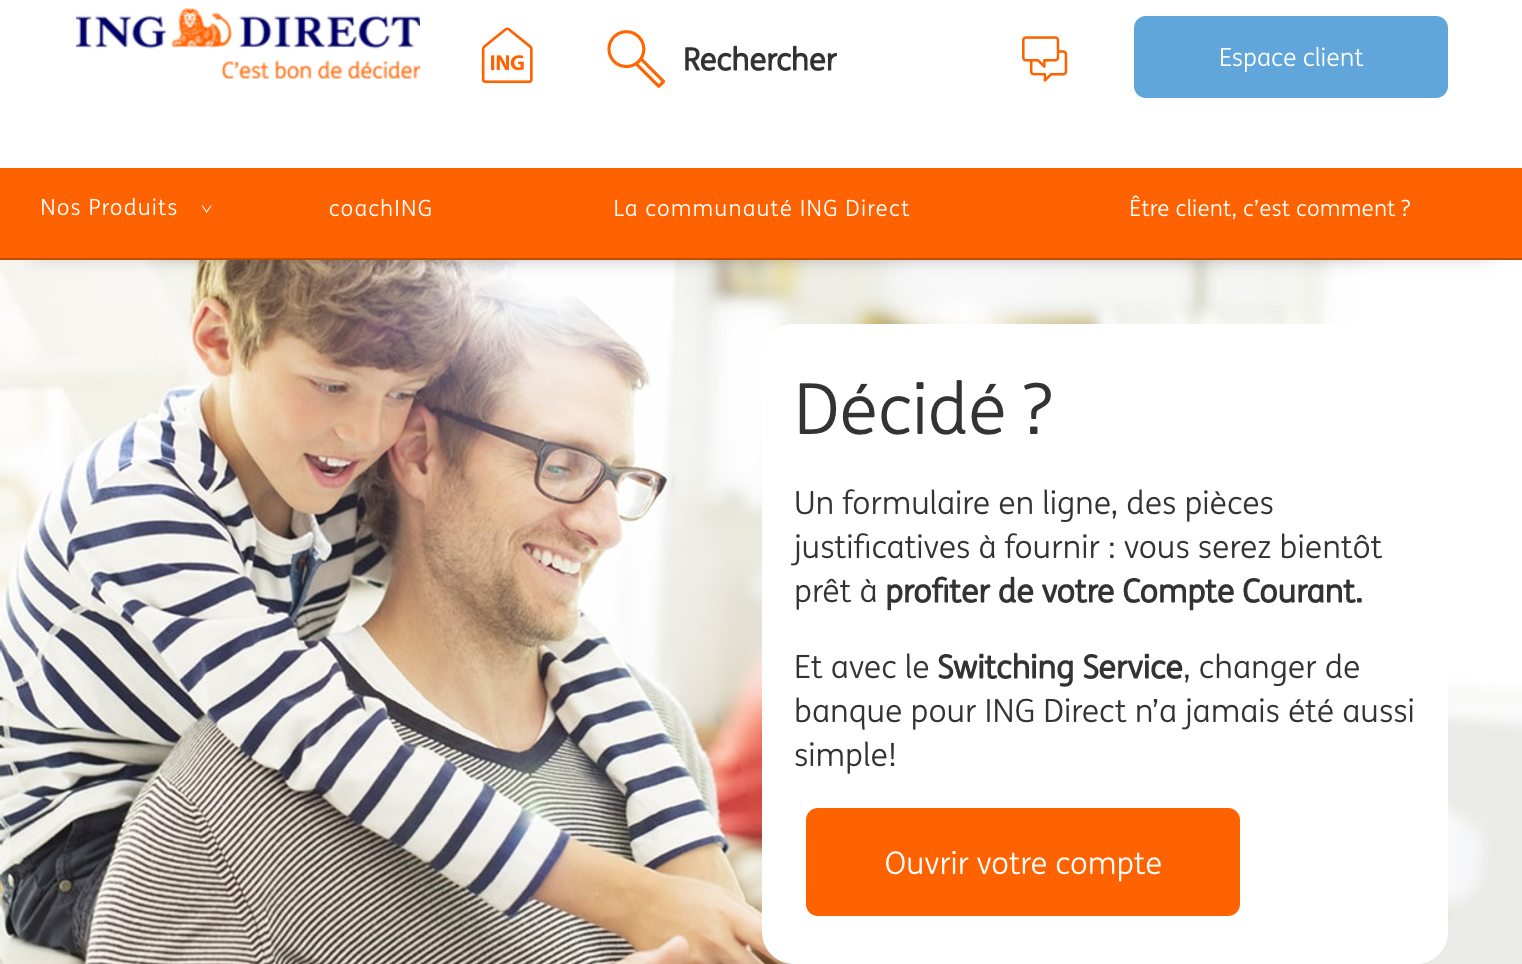 Ouvrir un compte ING Direct